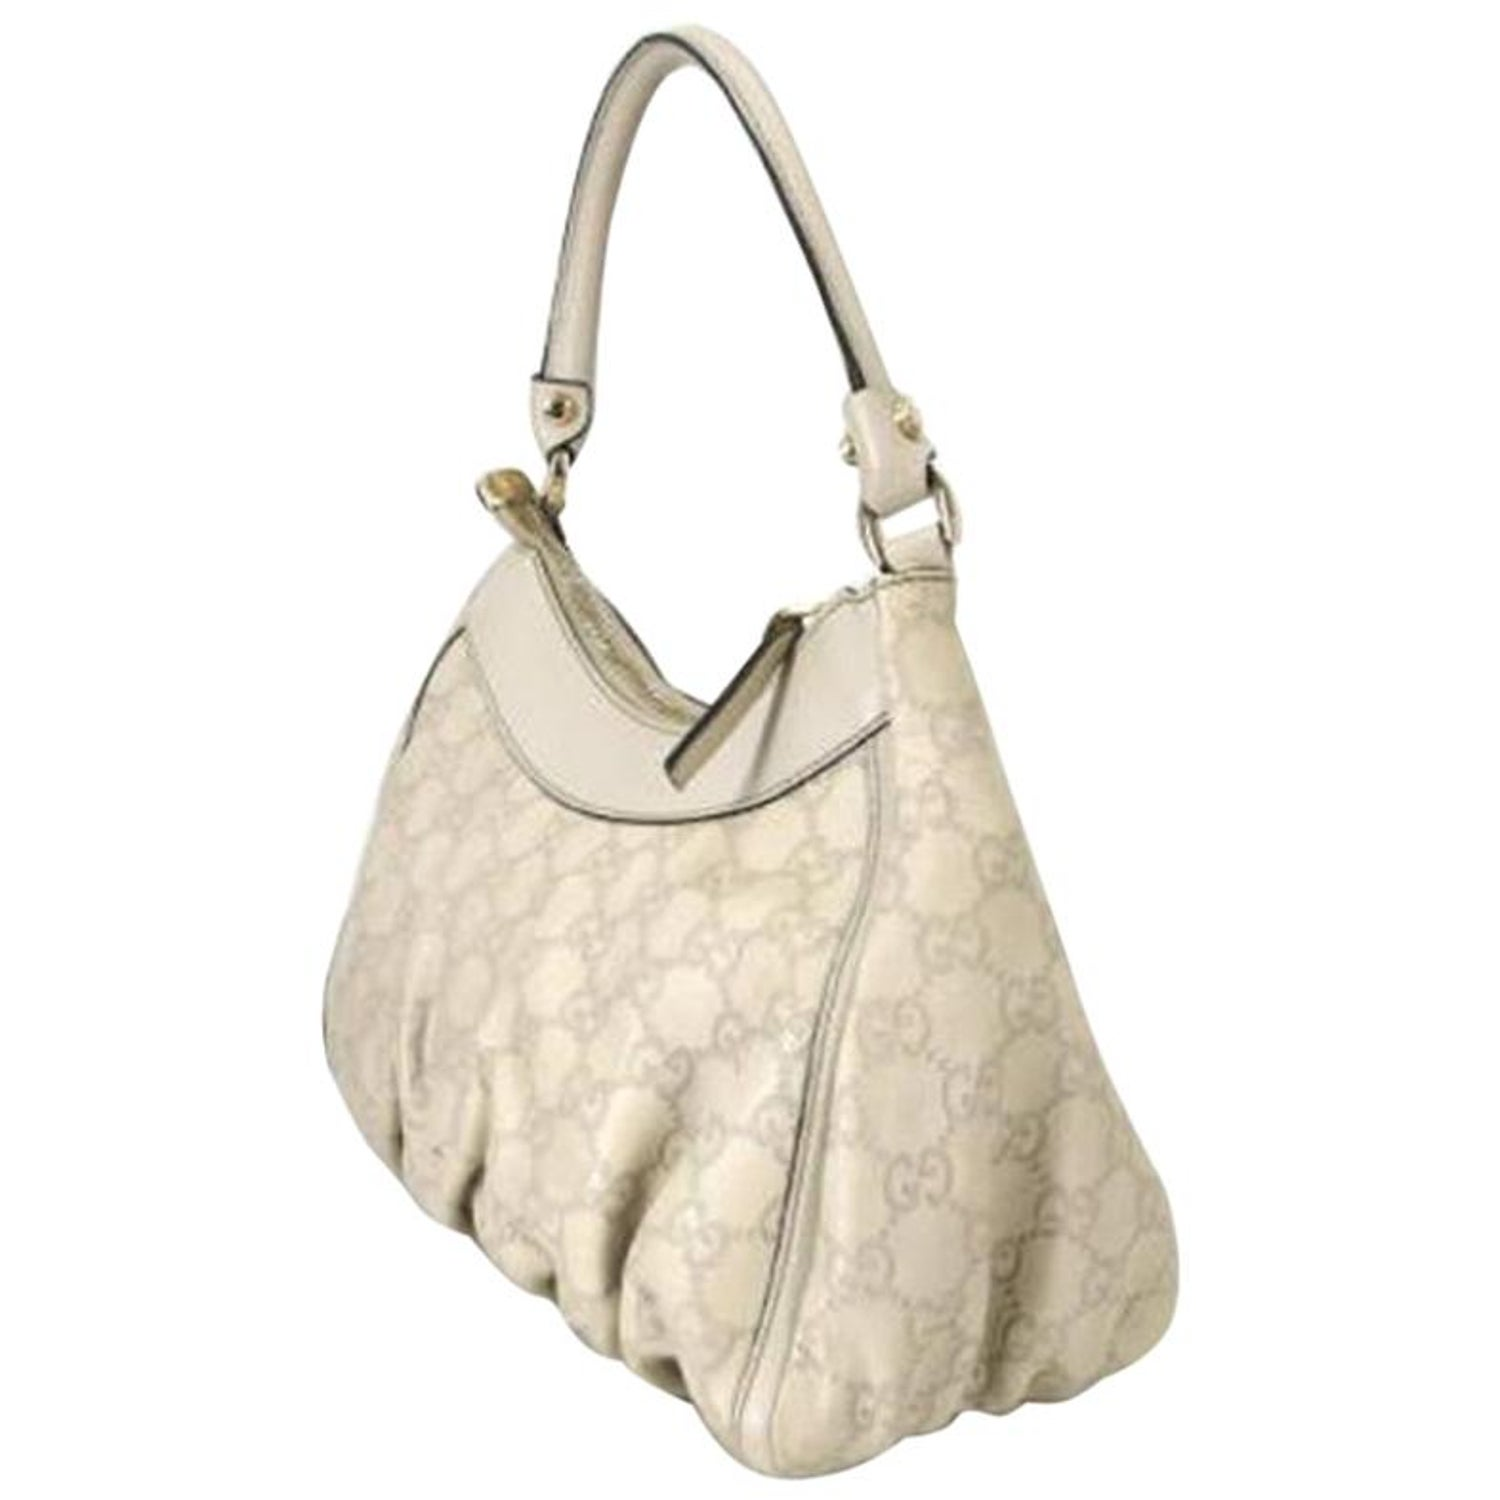 4d999e338785d6 Gucci Guccissima Small D-ring 220933 Ivory Leather Hobo Bag at 1stdibs